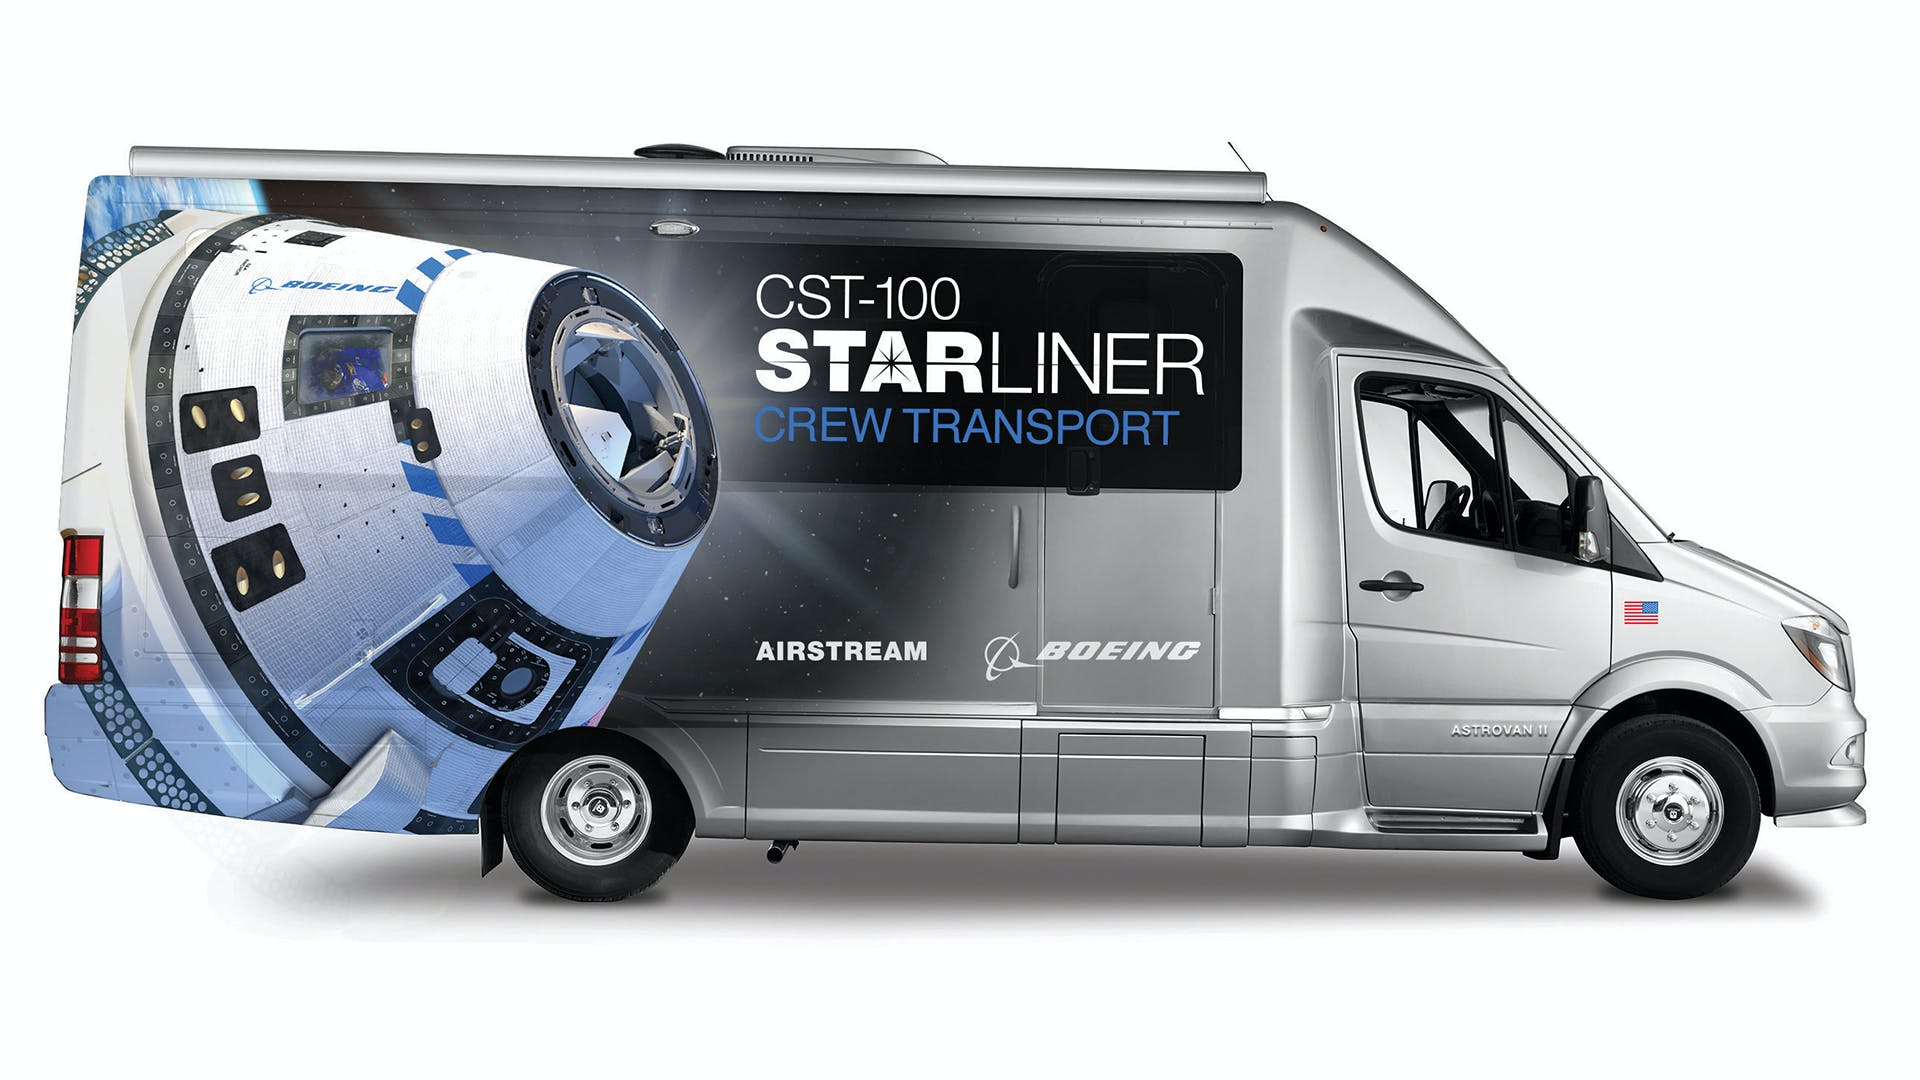 2020 Airstream Astrovan II Boeing Starliner Program